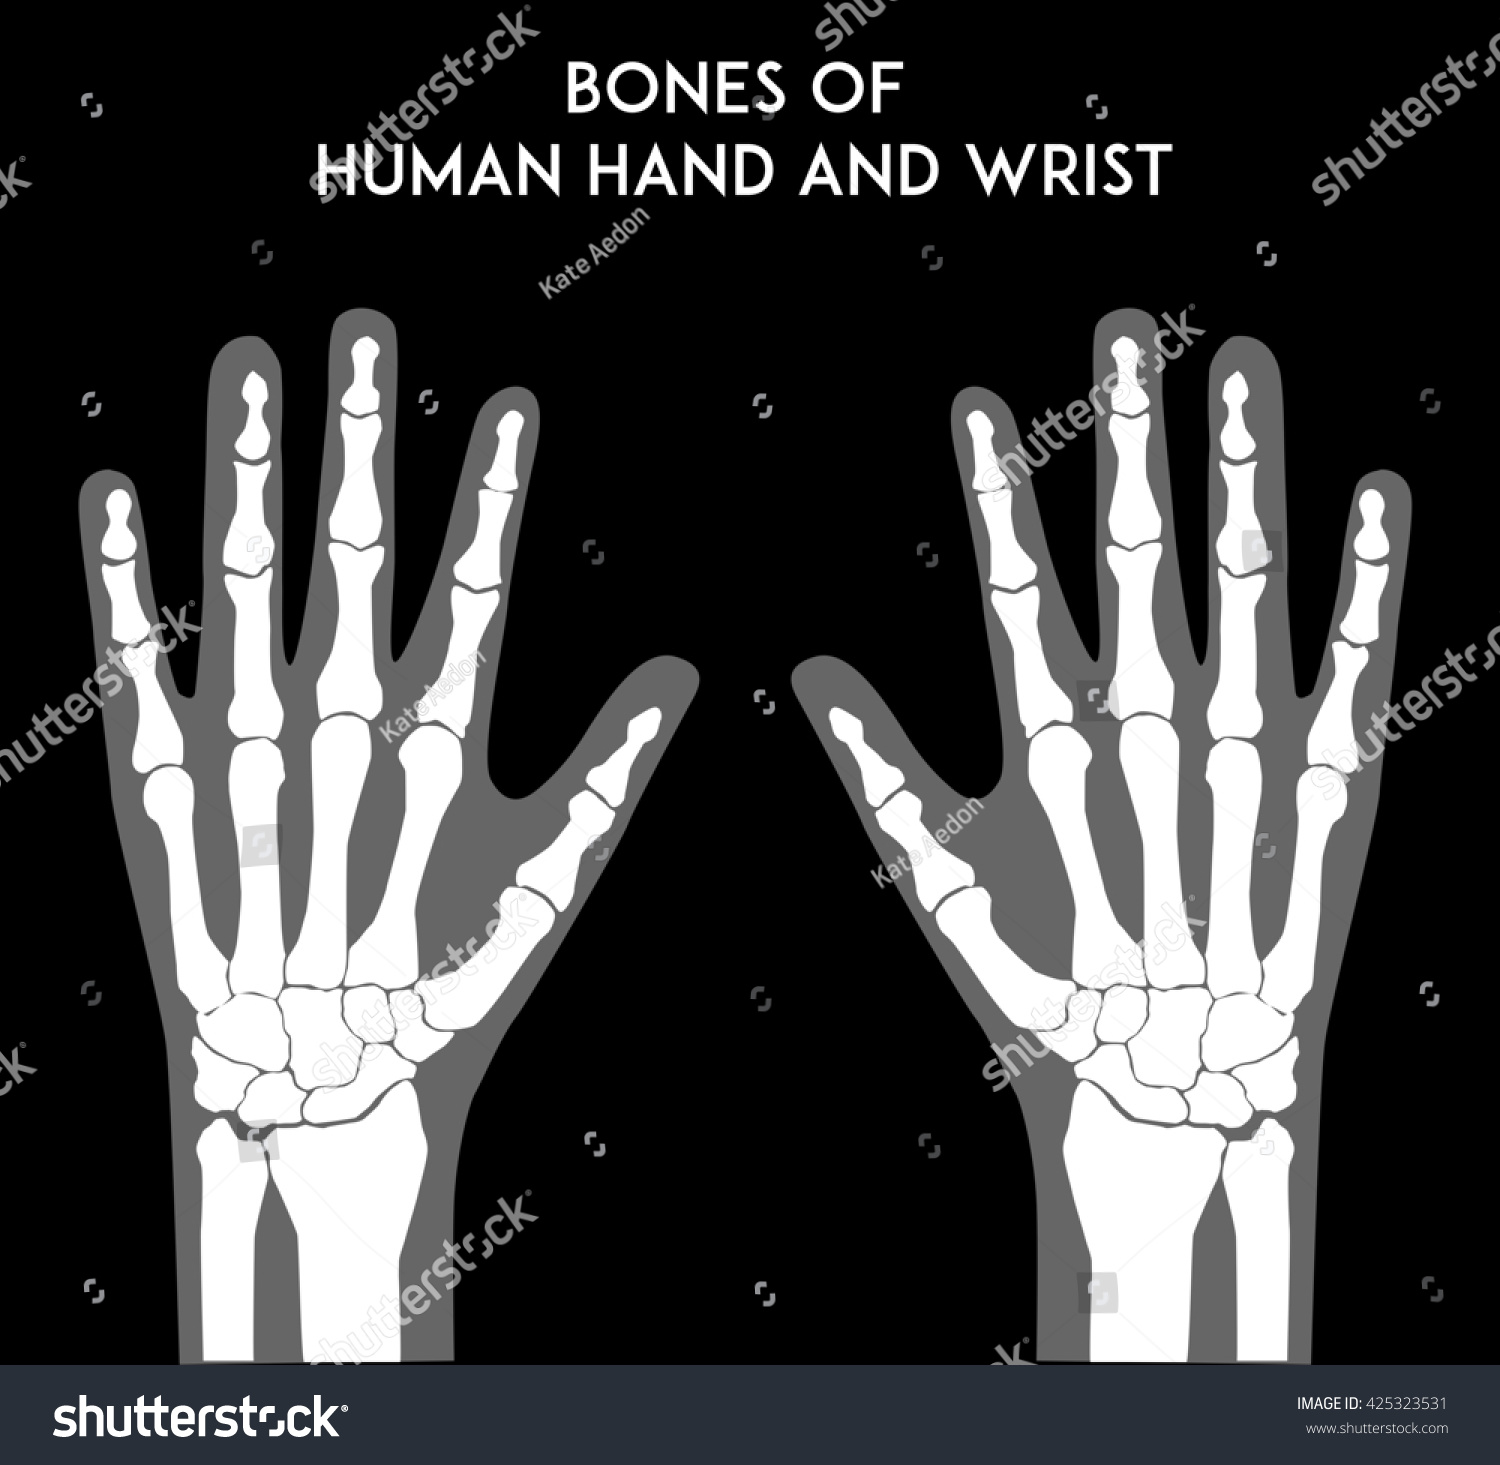 wrist and hand unlabeled diagram citroen c4 wiring bones of human medically accurate vector minimal illustration for web or print ez canvas